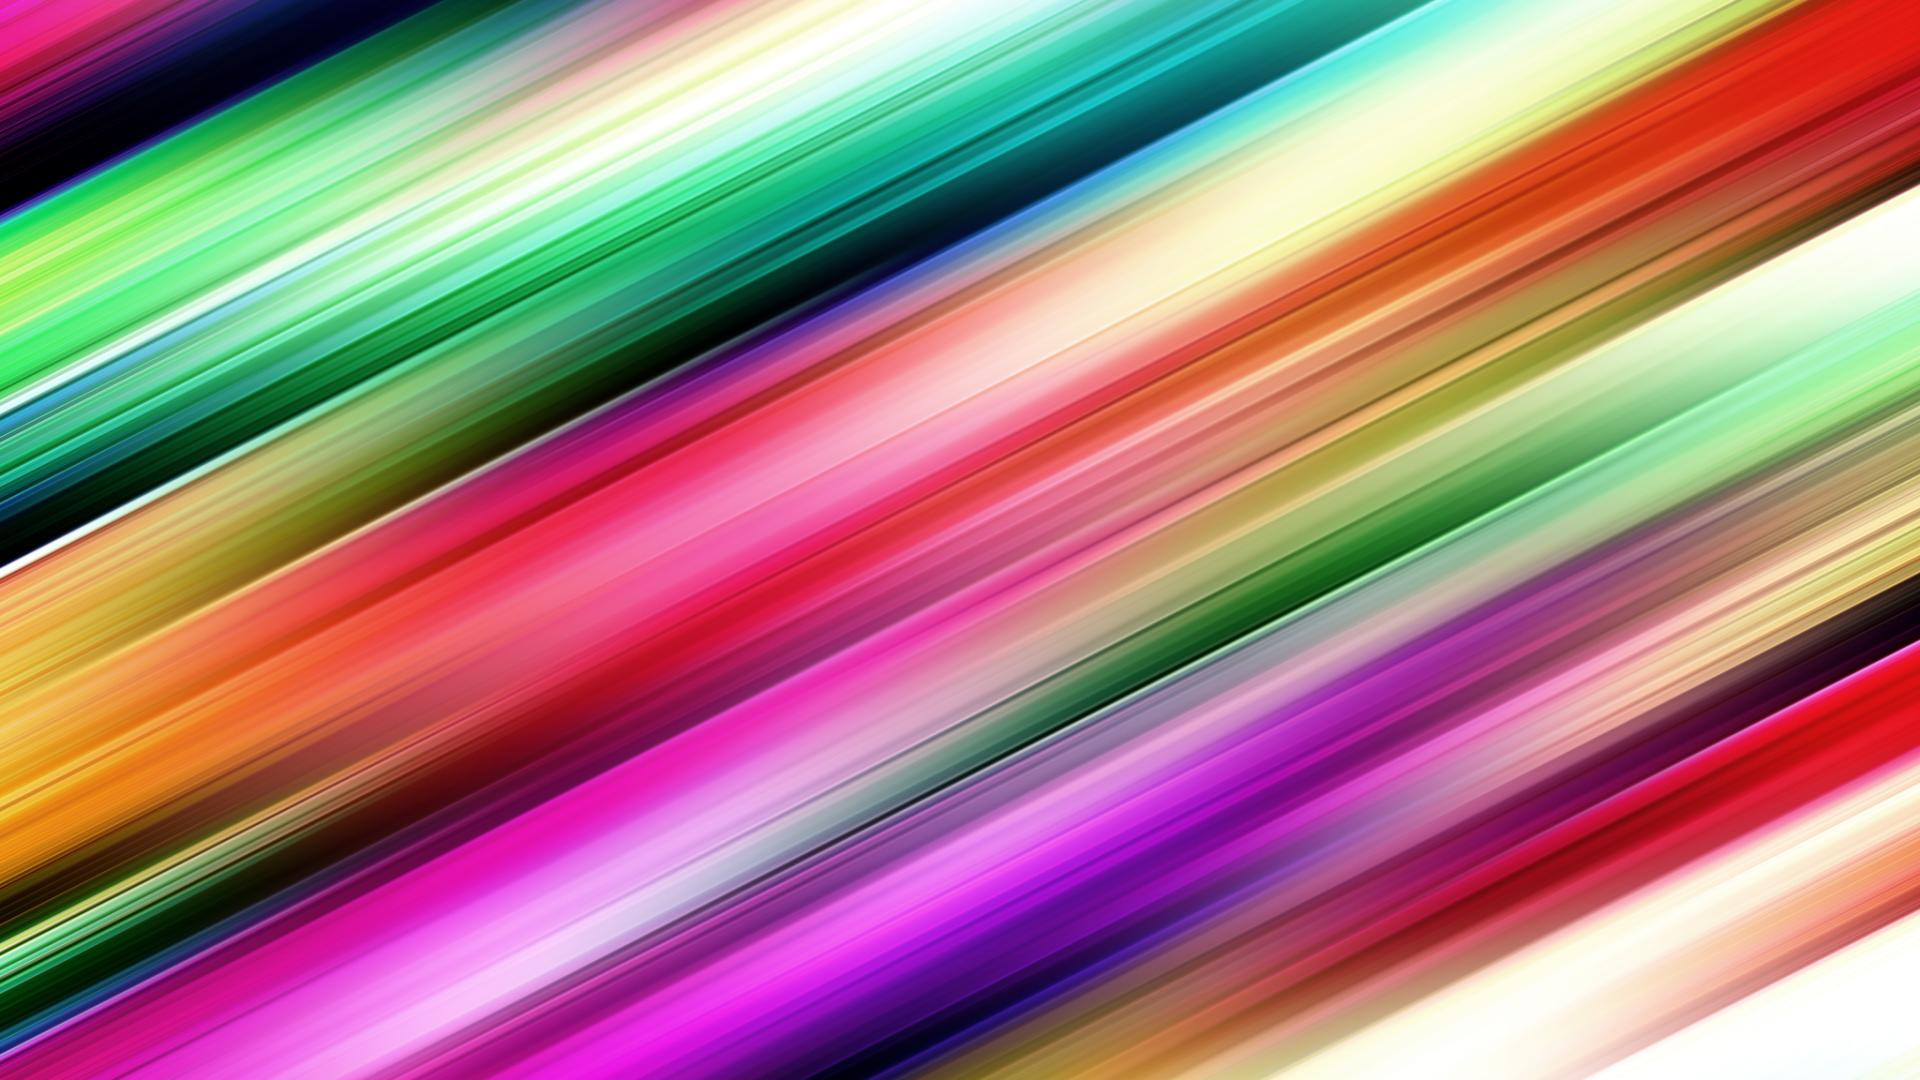 Lines Artistic wallpapers HD quality